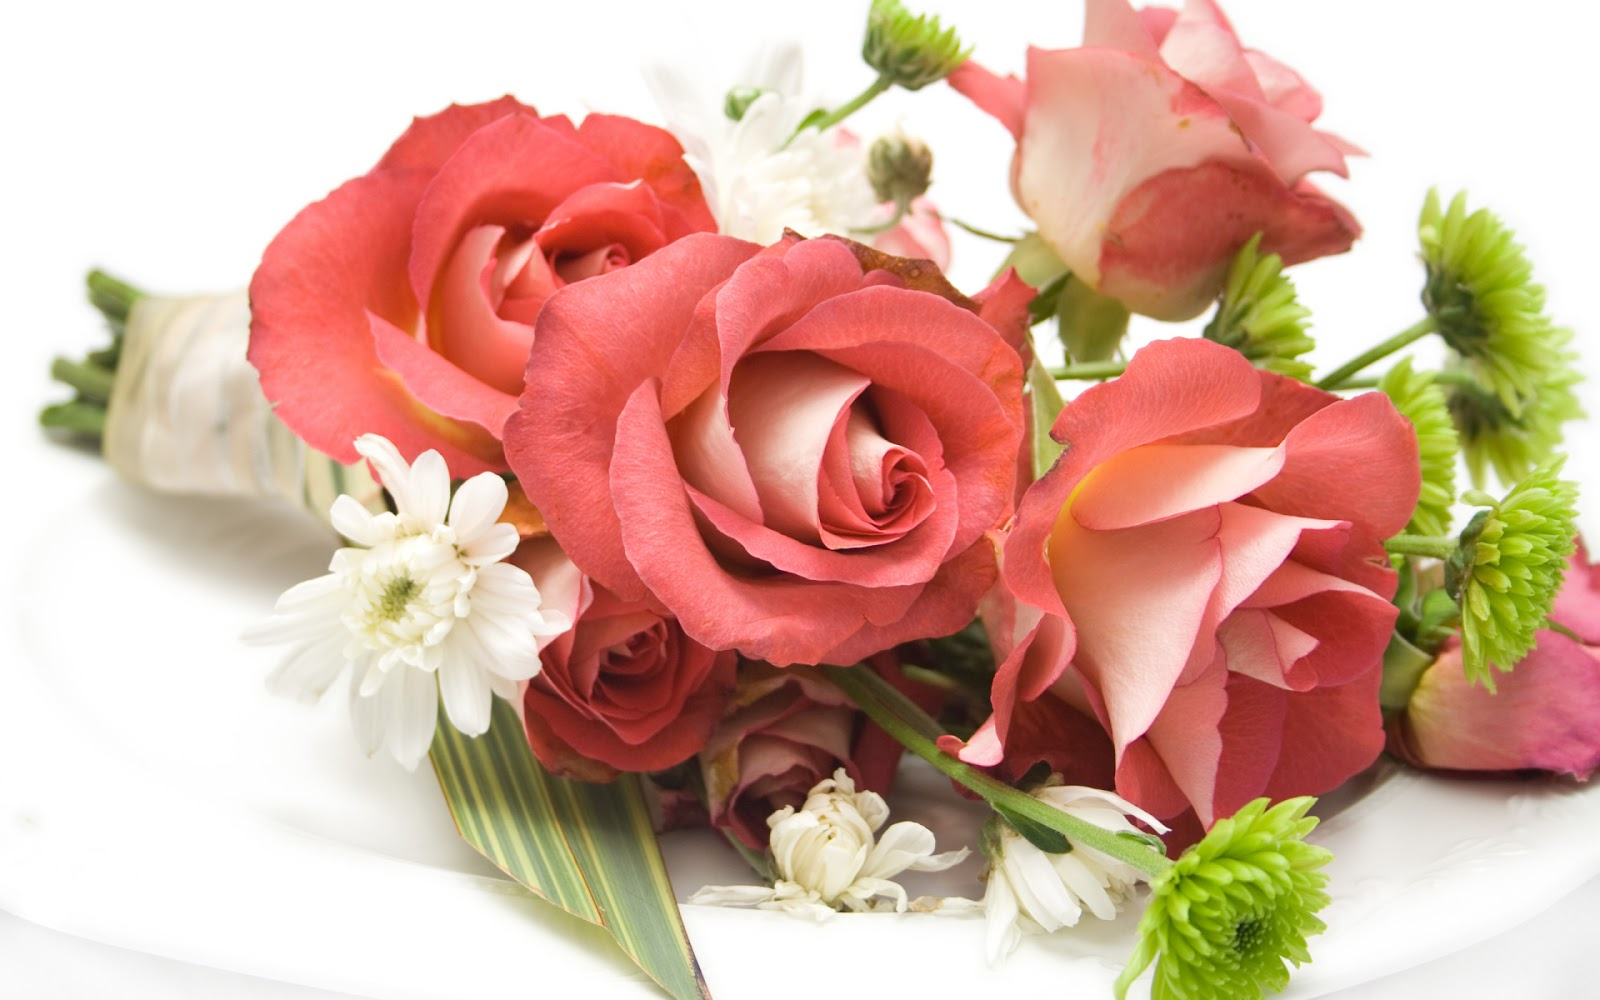 Send flowers to india florist in india flowers and cakes in india send flowers to aurangabad on special occasions and celebrations flowers express your heartfelt love and affection for your loved ones izmirmasajfo Images